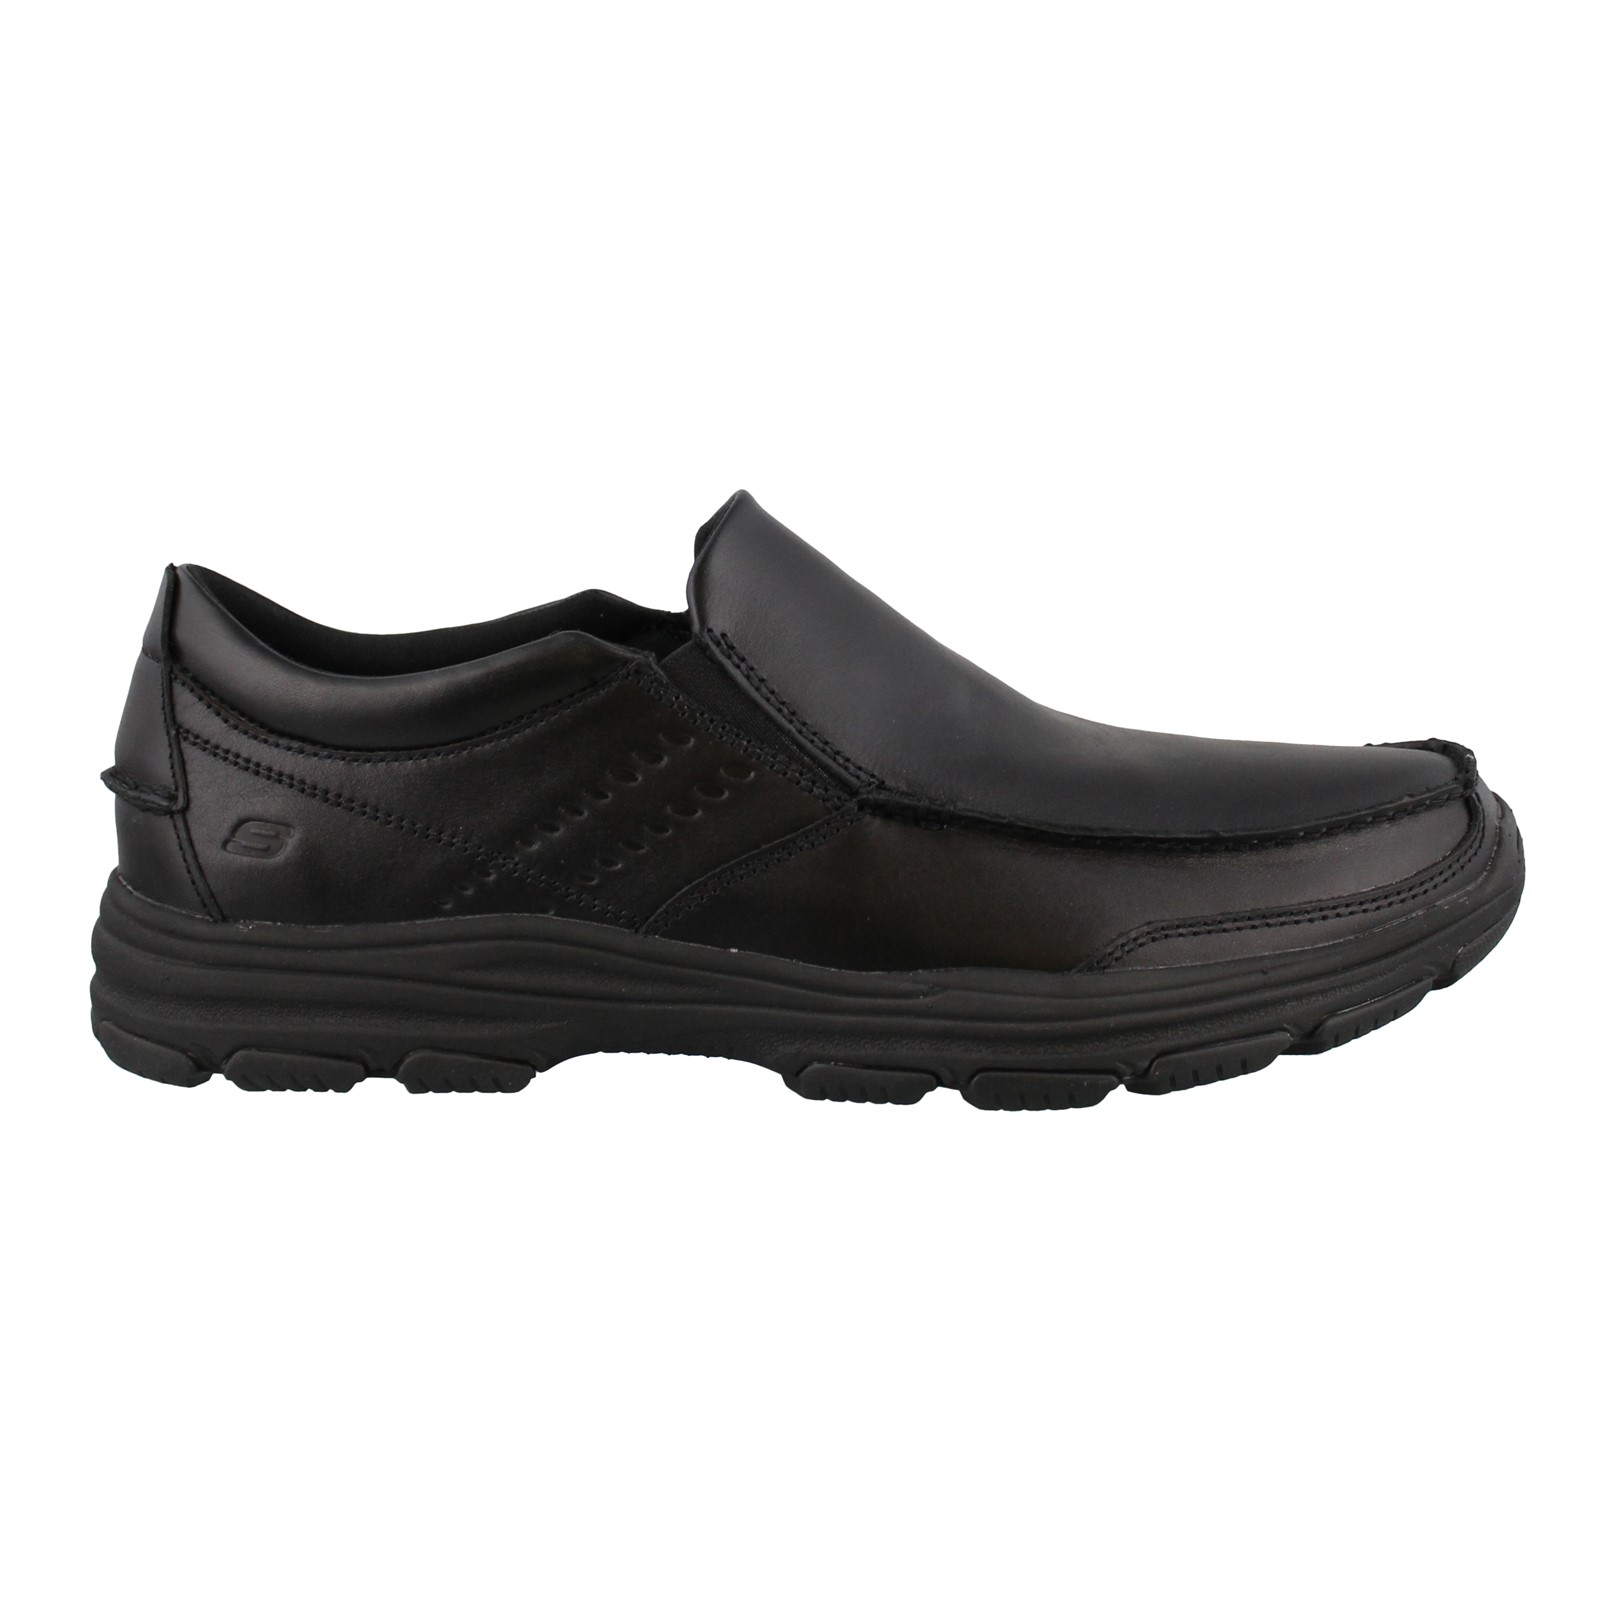 Men's Skechers, Garton Messon Slip on Shoes Wide Width